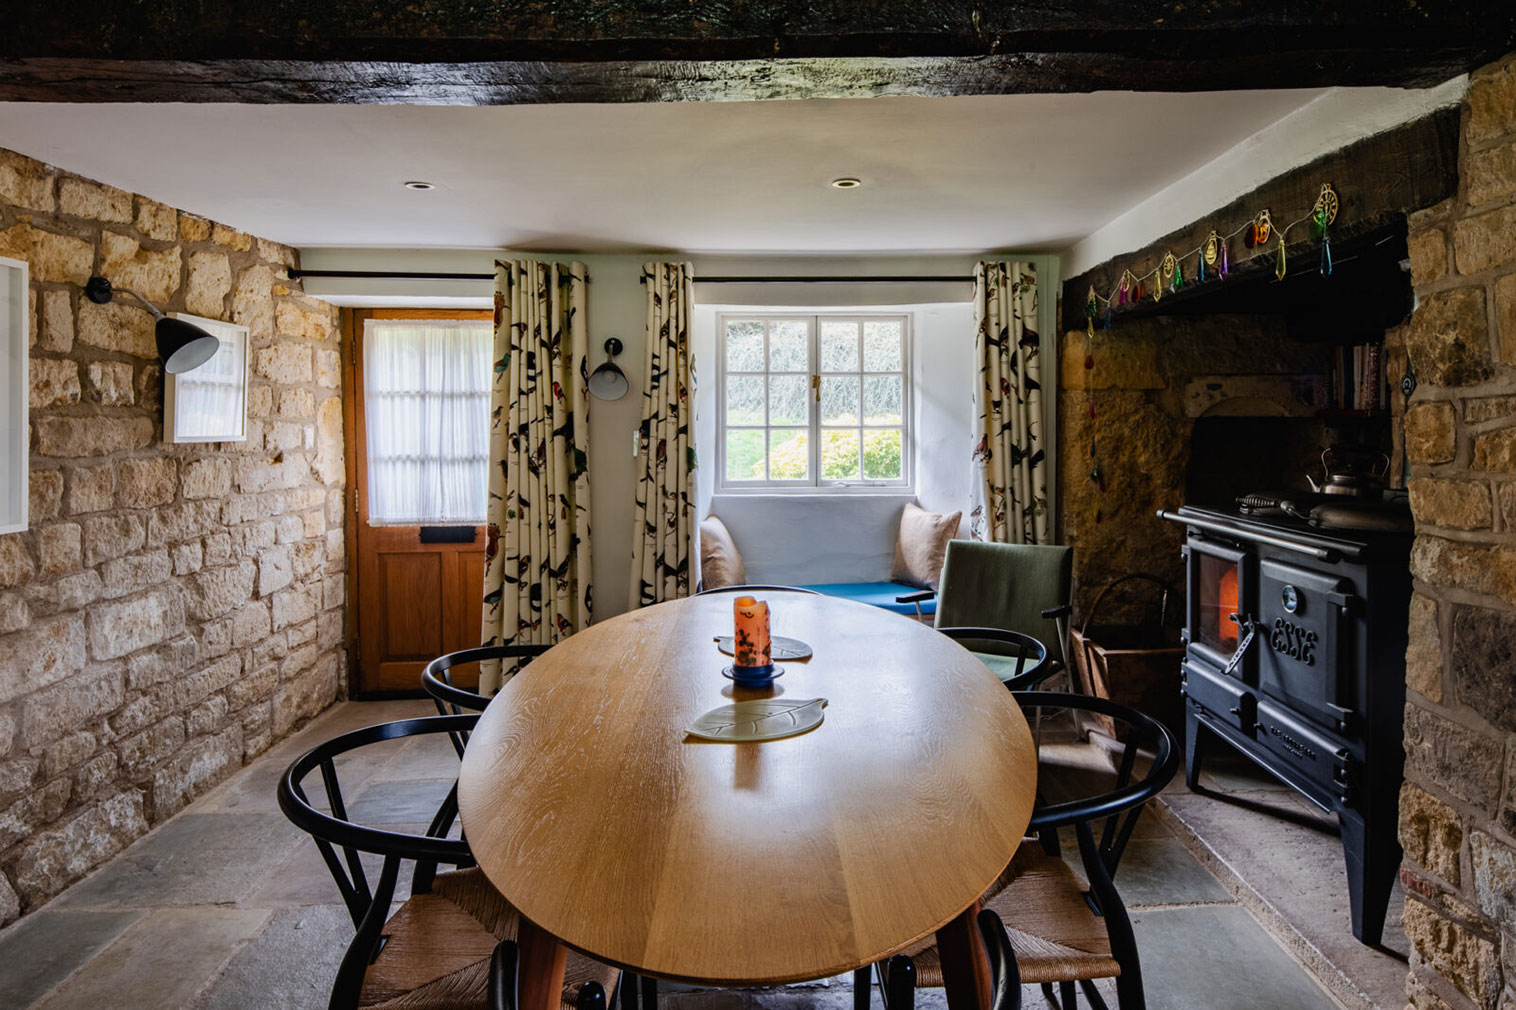 The ground floor has a separate dining room with flagstone floors, limestone walls and an inglenook fireplace